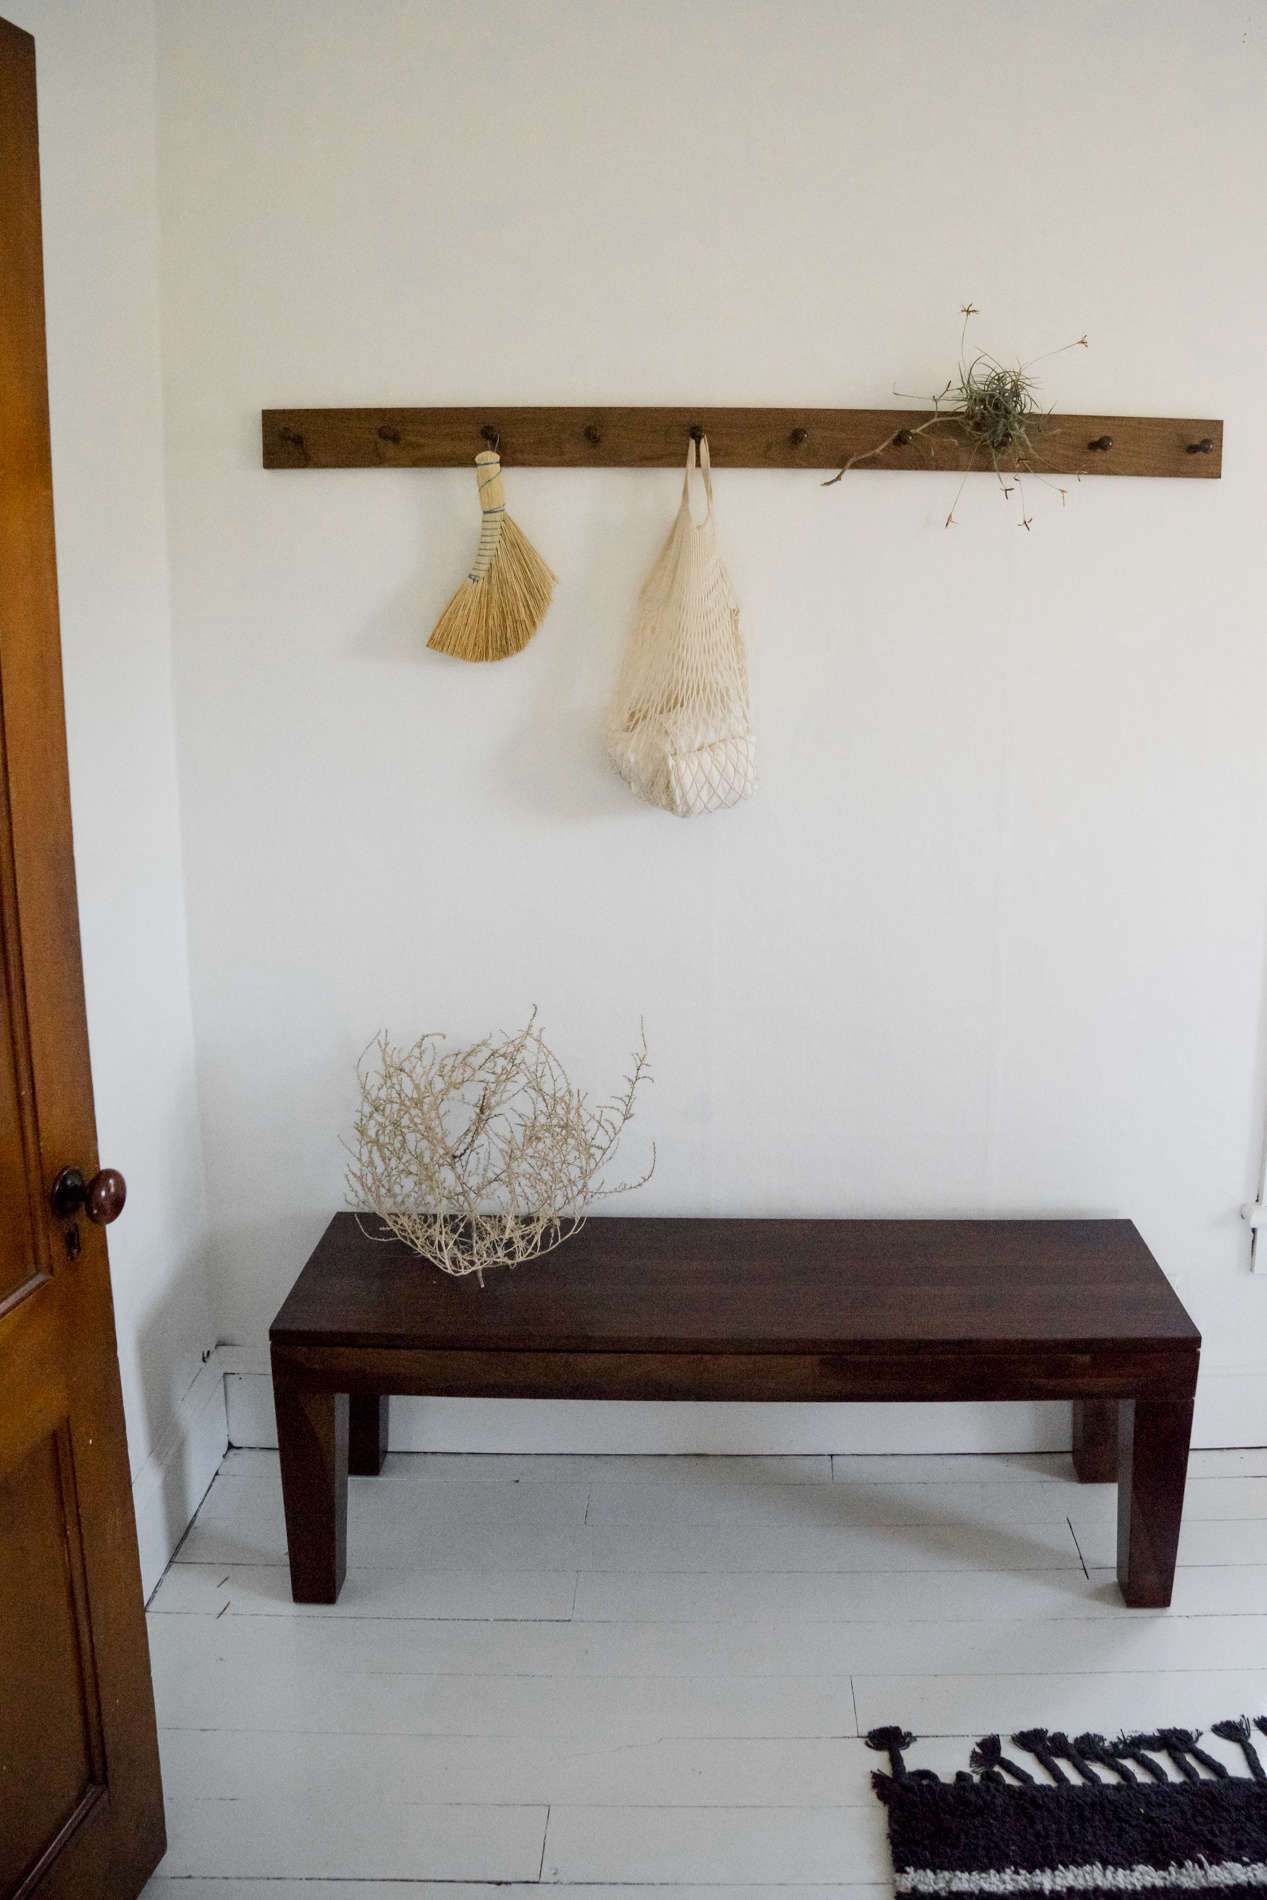 At the foot of the bed, another peg rail holds a Redecker hand broom and dried tumbleweeds.